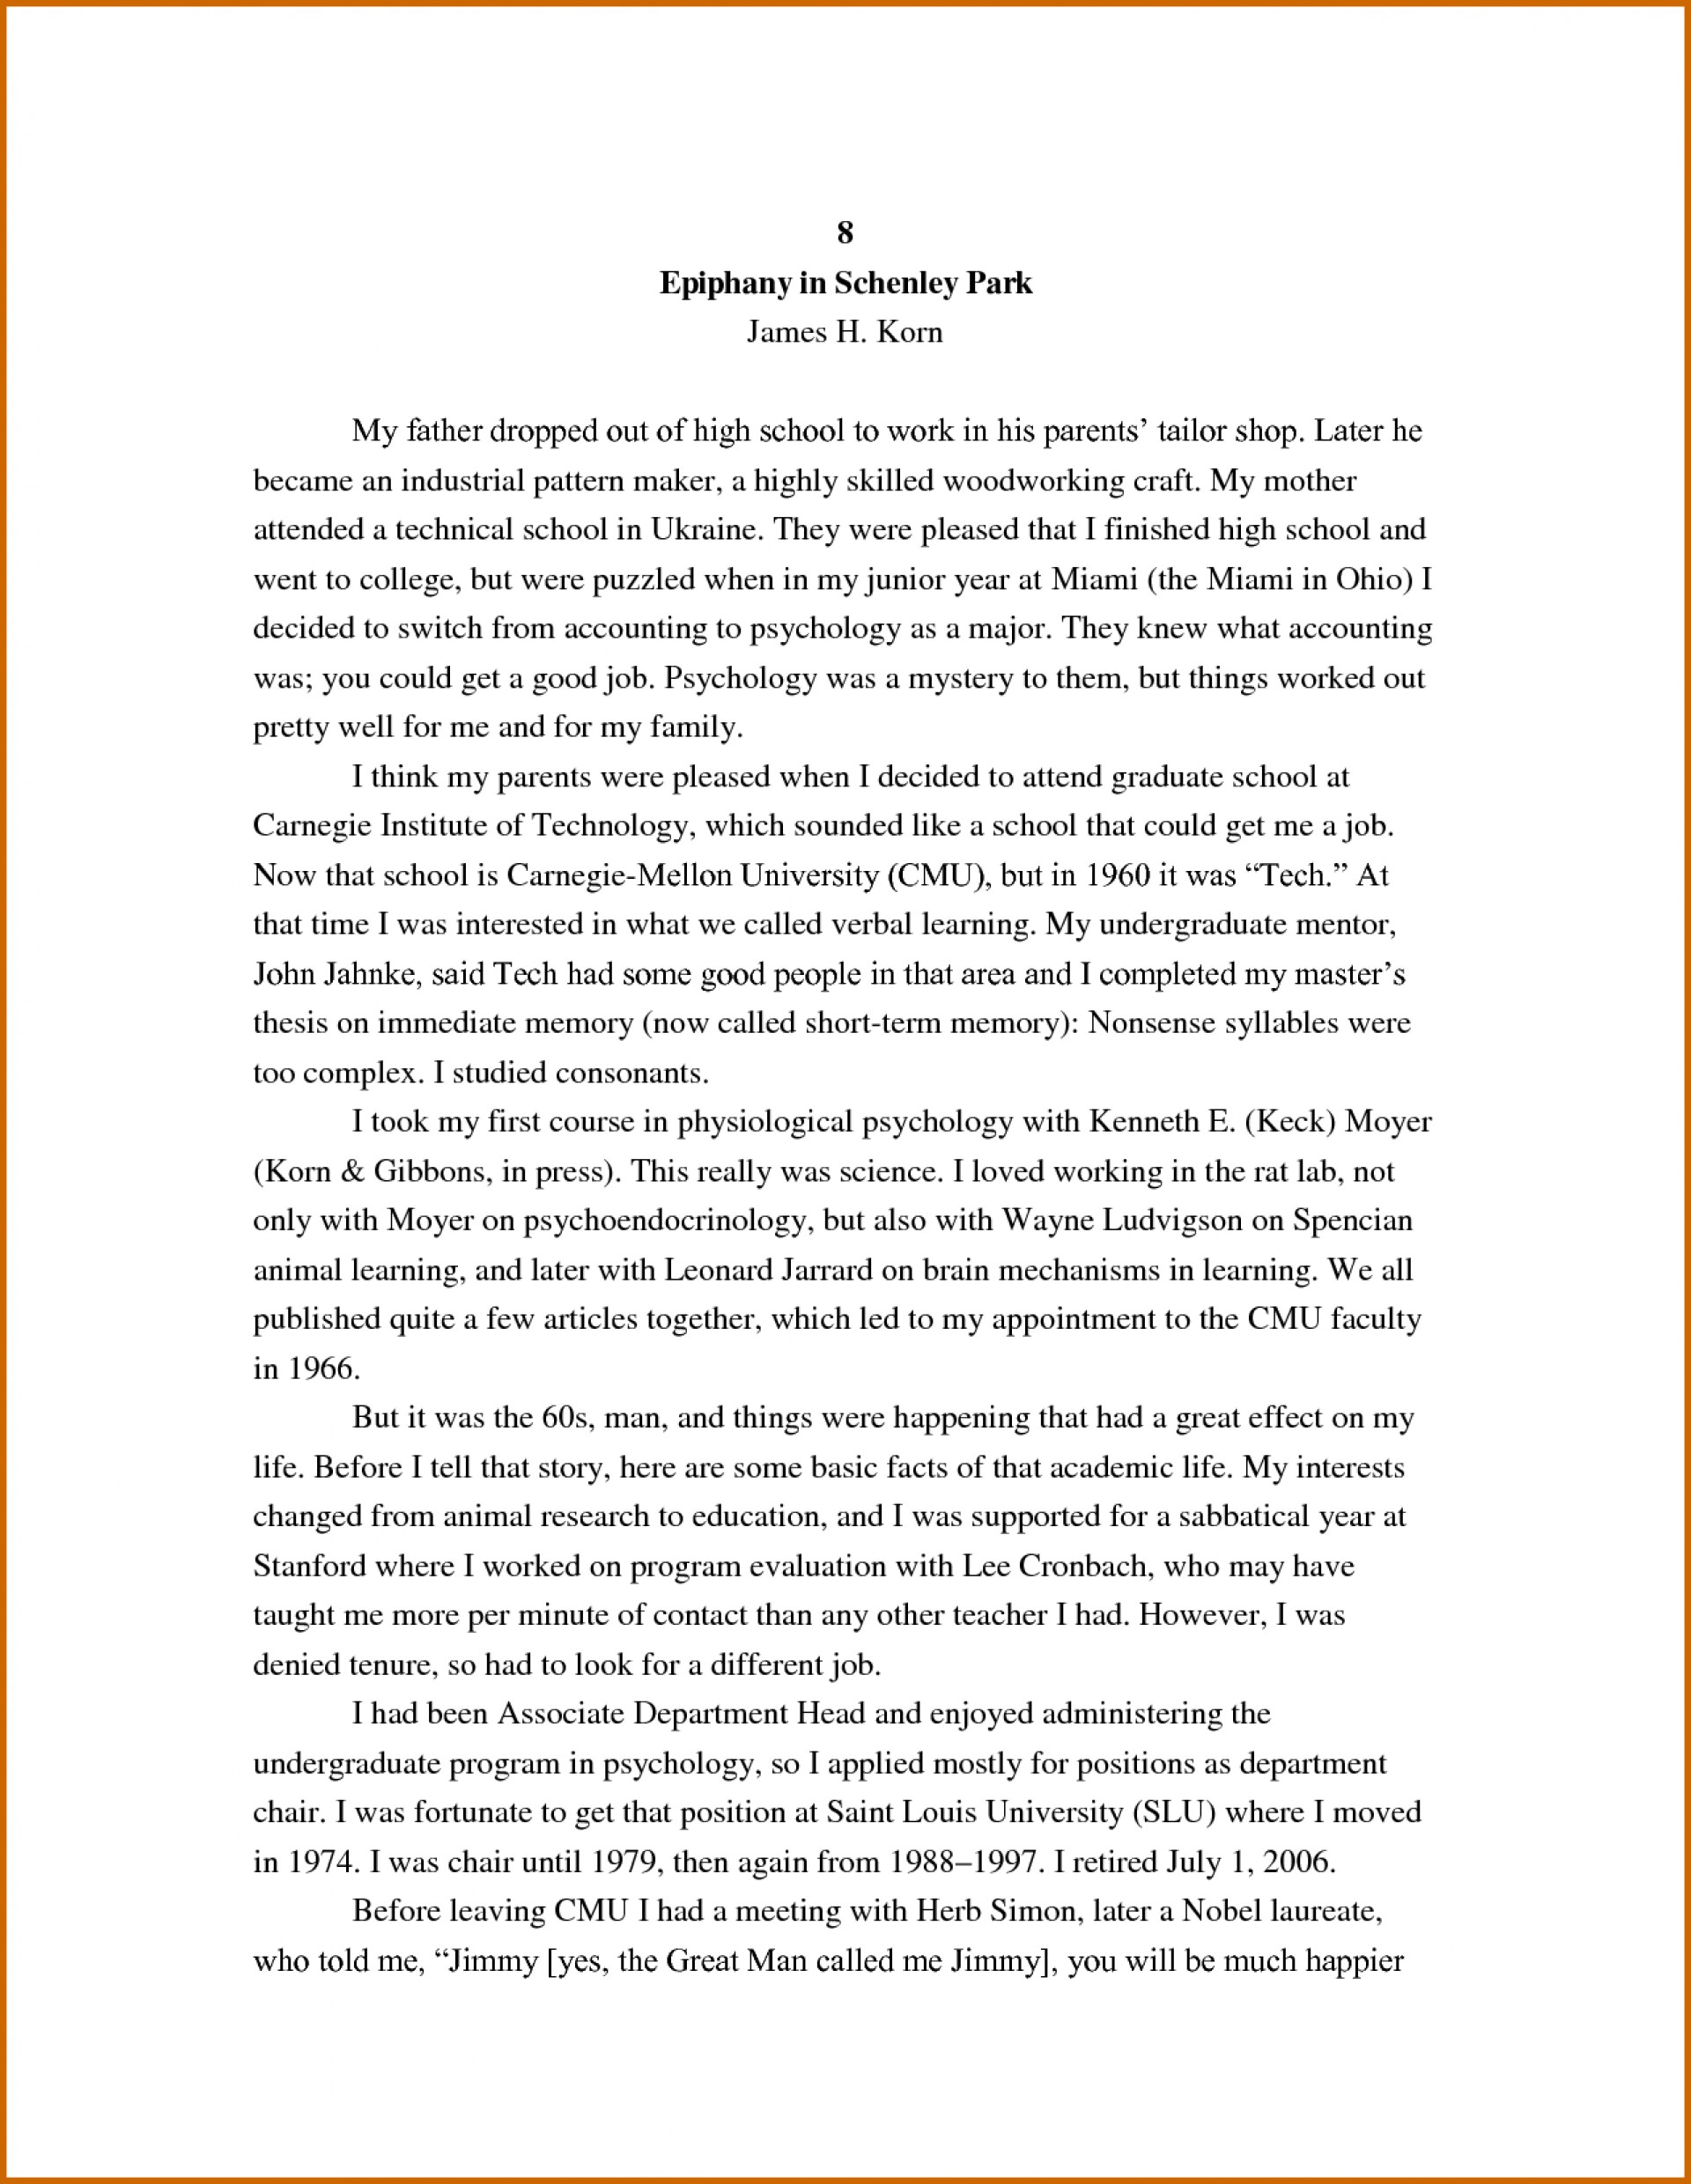 017 How To Write An Autobiographical Essay Autobiography For College Incredible Graduate School Example A Job 1920